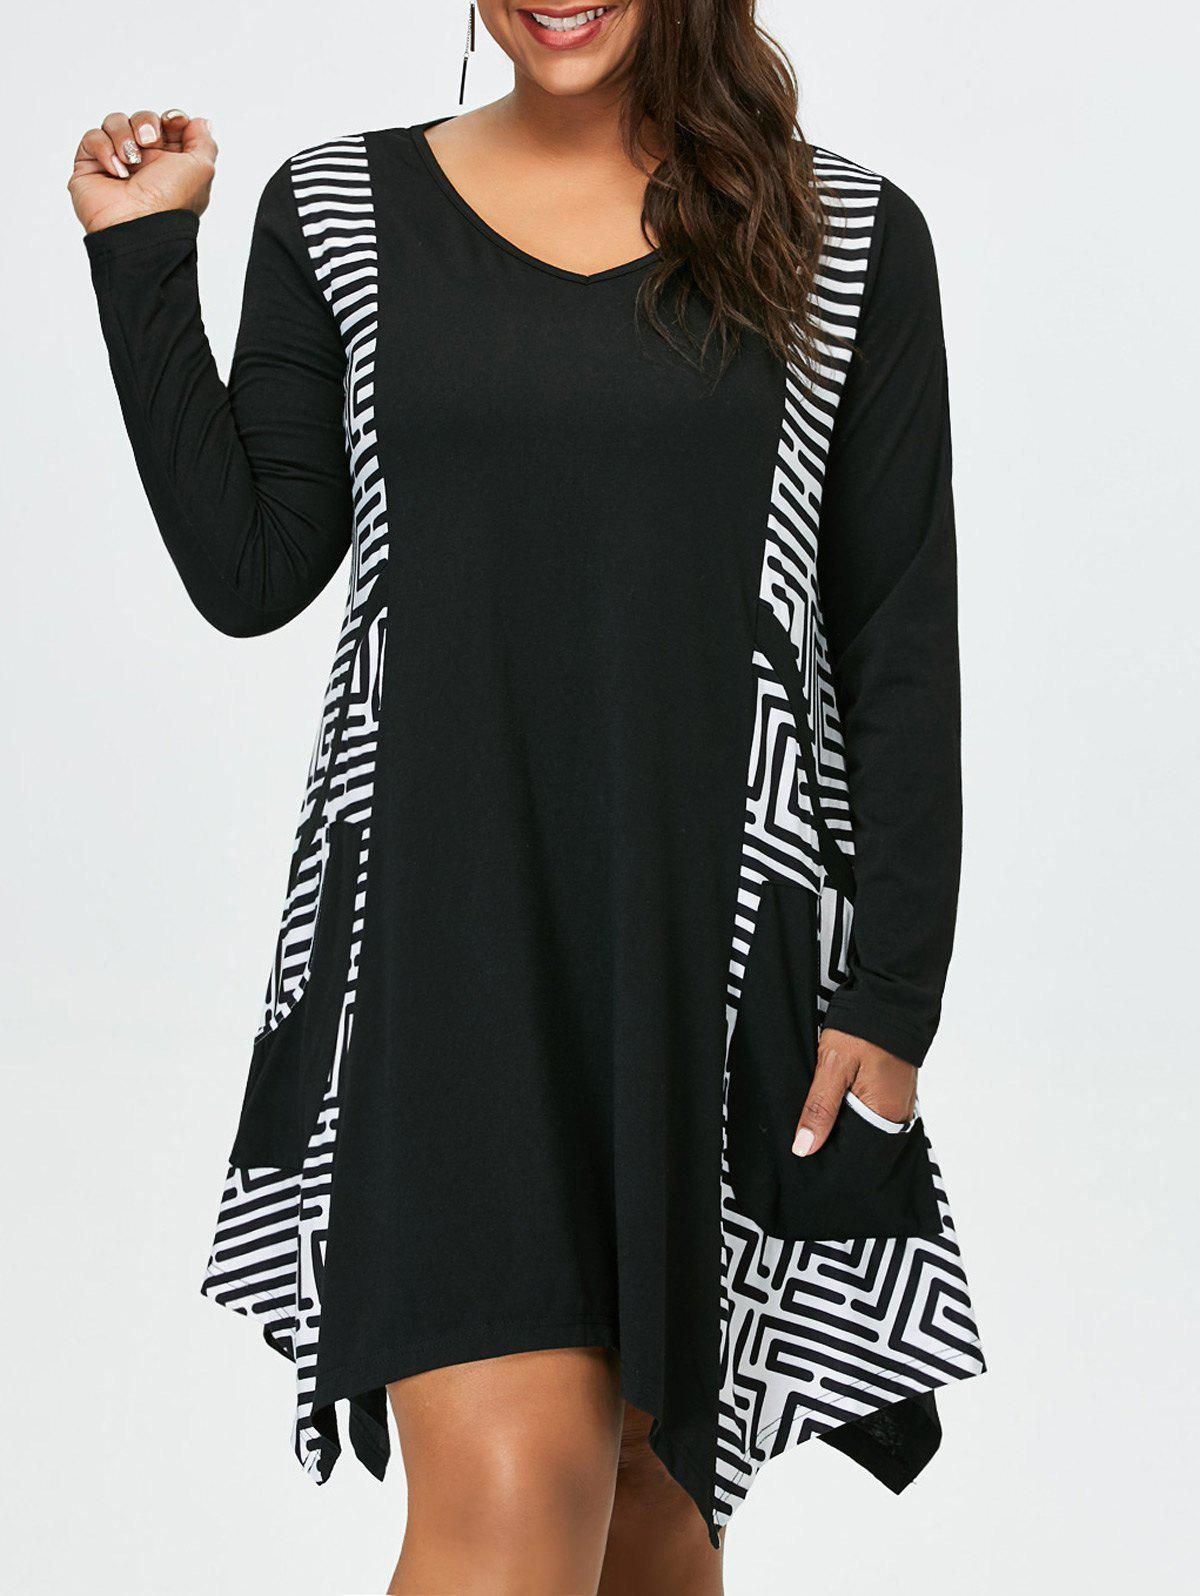 Plus Size Long Sleeve Asymmetrical Tee Dress with PocketsWOMEN<br><br>Size: 2XL; Color: WHITE AND BLACK; Style: Casual; Material: Polyester,Spandex; Silhouette: Asymmetrical; Dresses Length: Knee-Length; Neckline: V-Neck; Sleeve Length: Long Sleeves; Pattern Type: Others; With Belt: No; Season: Fall,Spring,Summer; Weight: 0.4200kg; Package Contents: 1 x Dress;